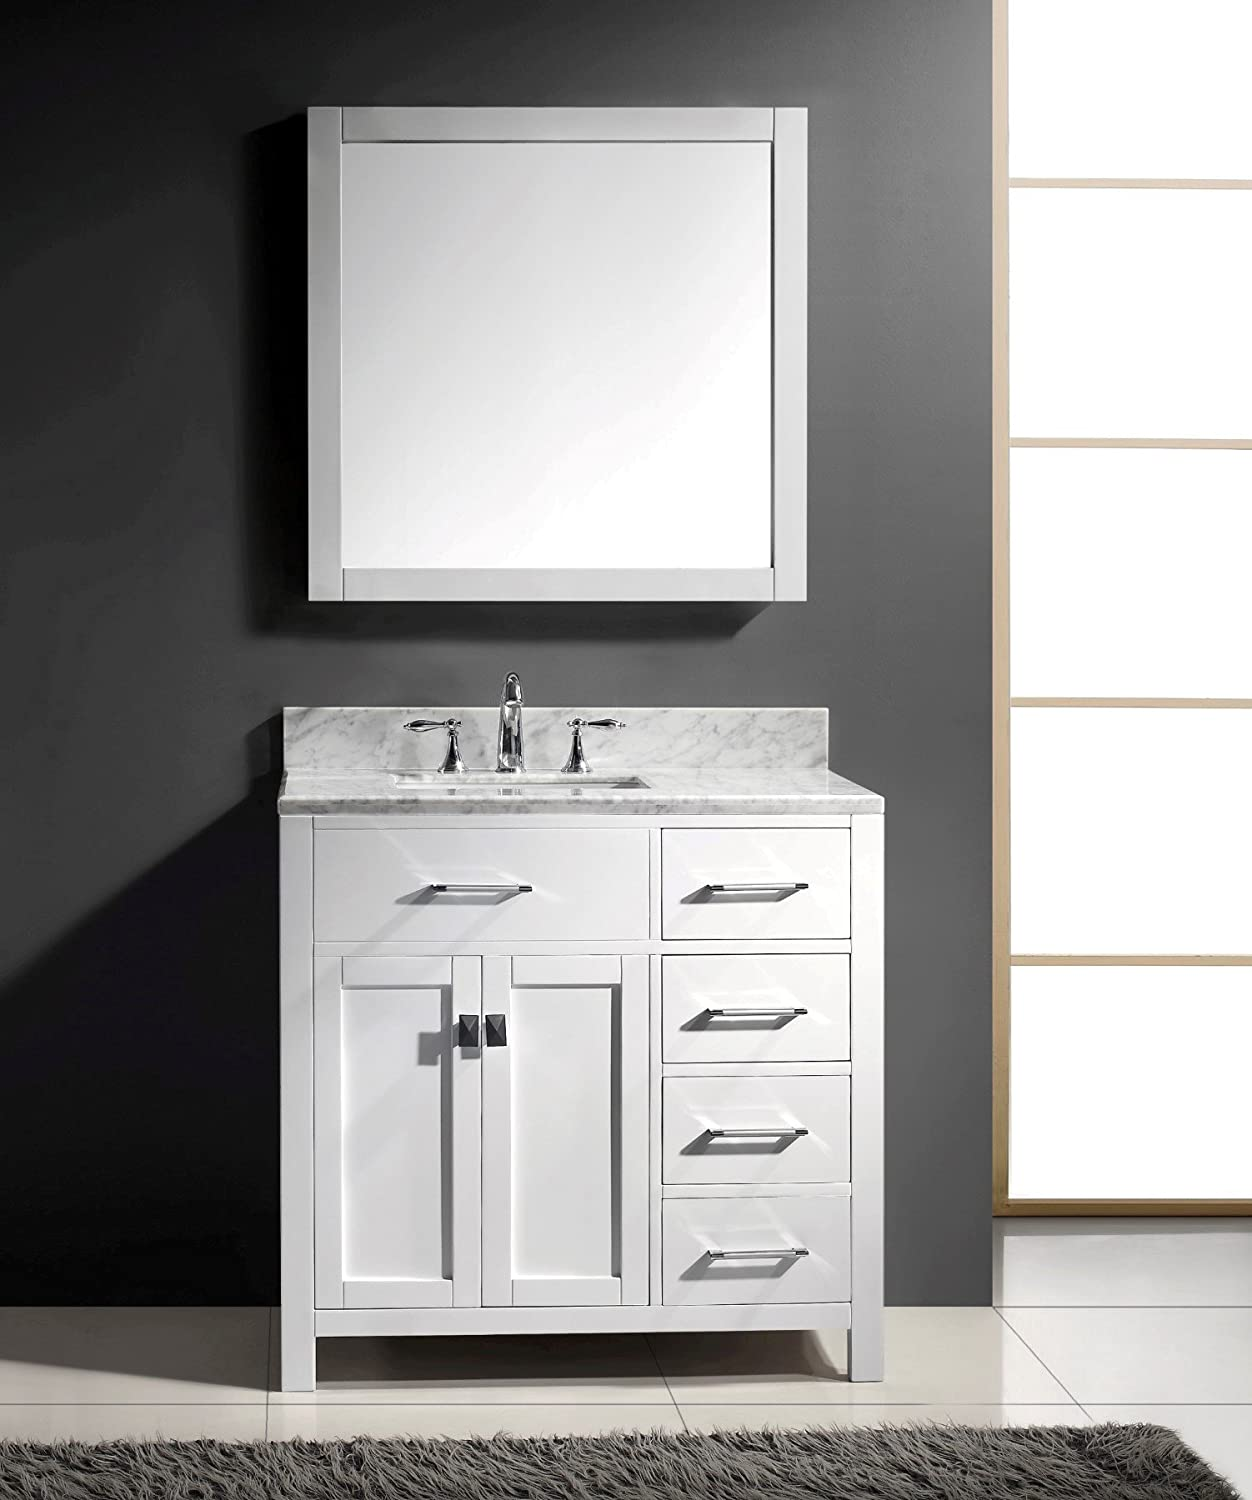 white single bathroom vanity. Virtu USA MS-2136R-WMSQ-WH 36-Inch Caroline Parkway Single Square Sink Bathroom Vanity, White - Amazon.com Vanity Y